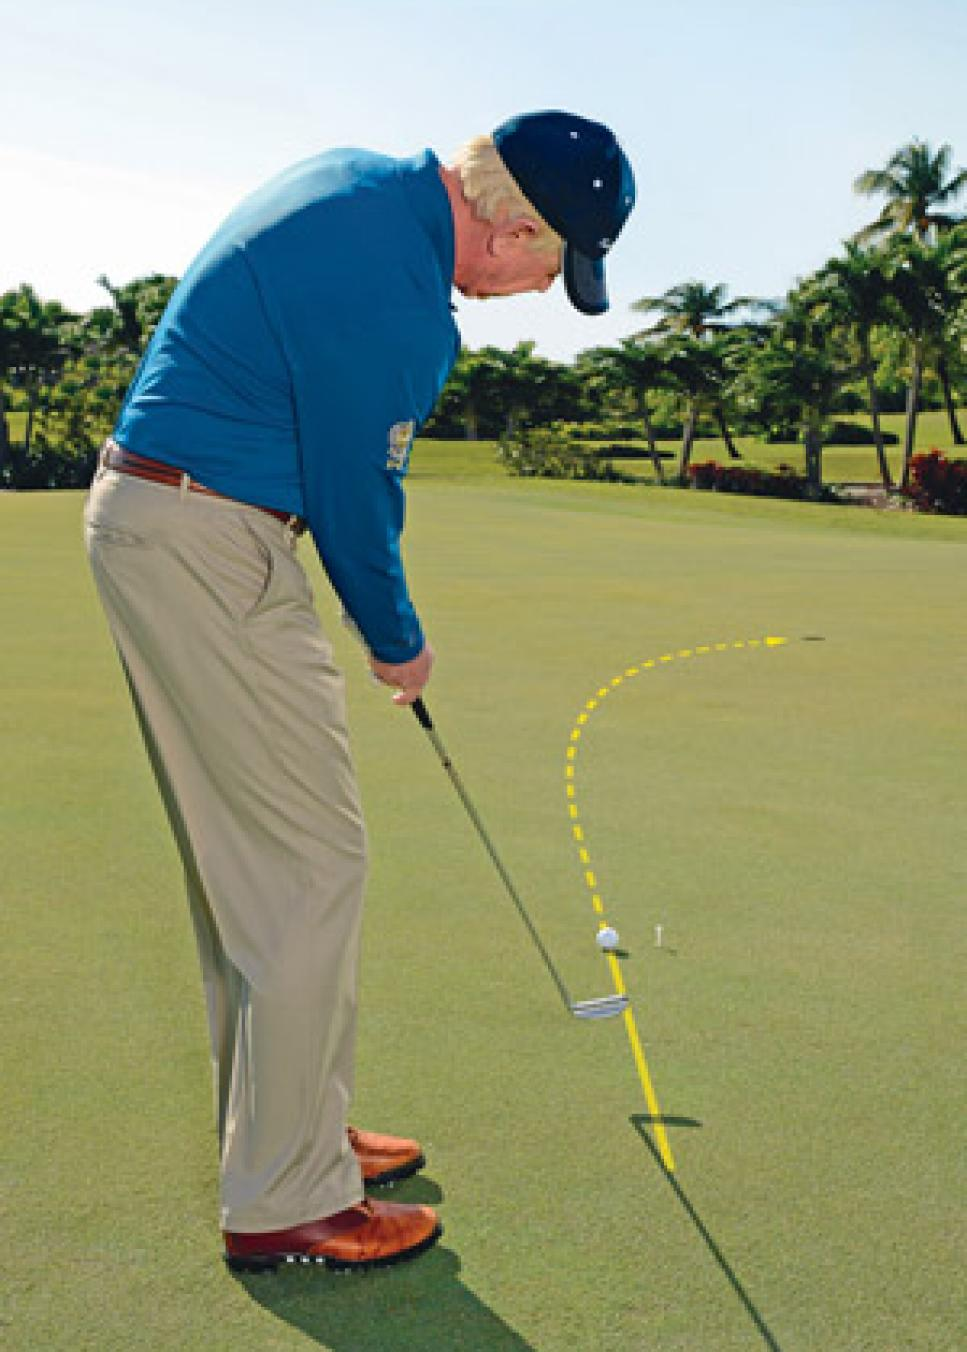 instruction-2013-10-inar01-jim-mclean-breaking-putt.jpg